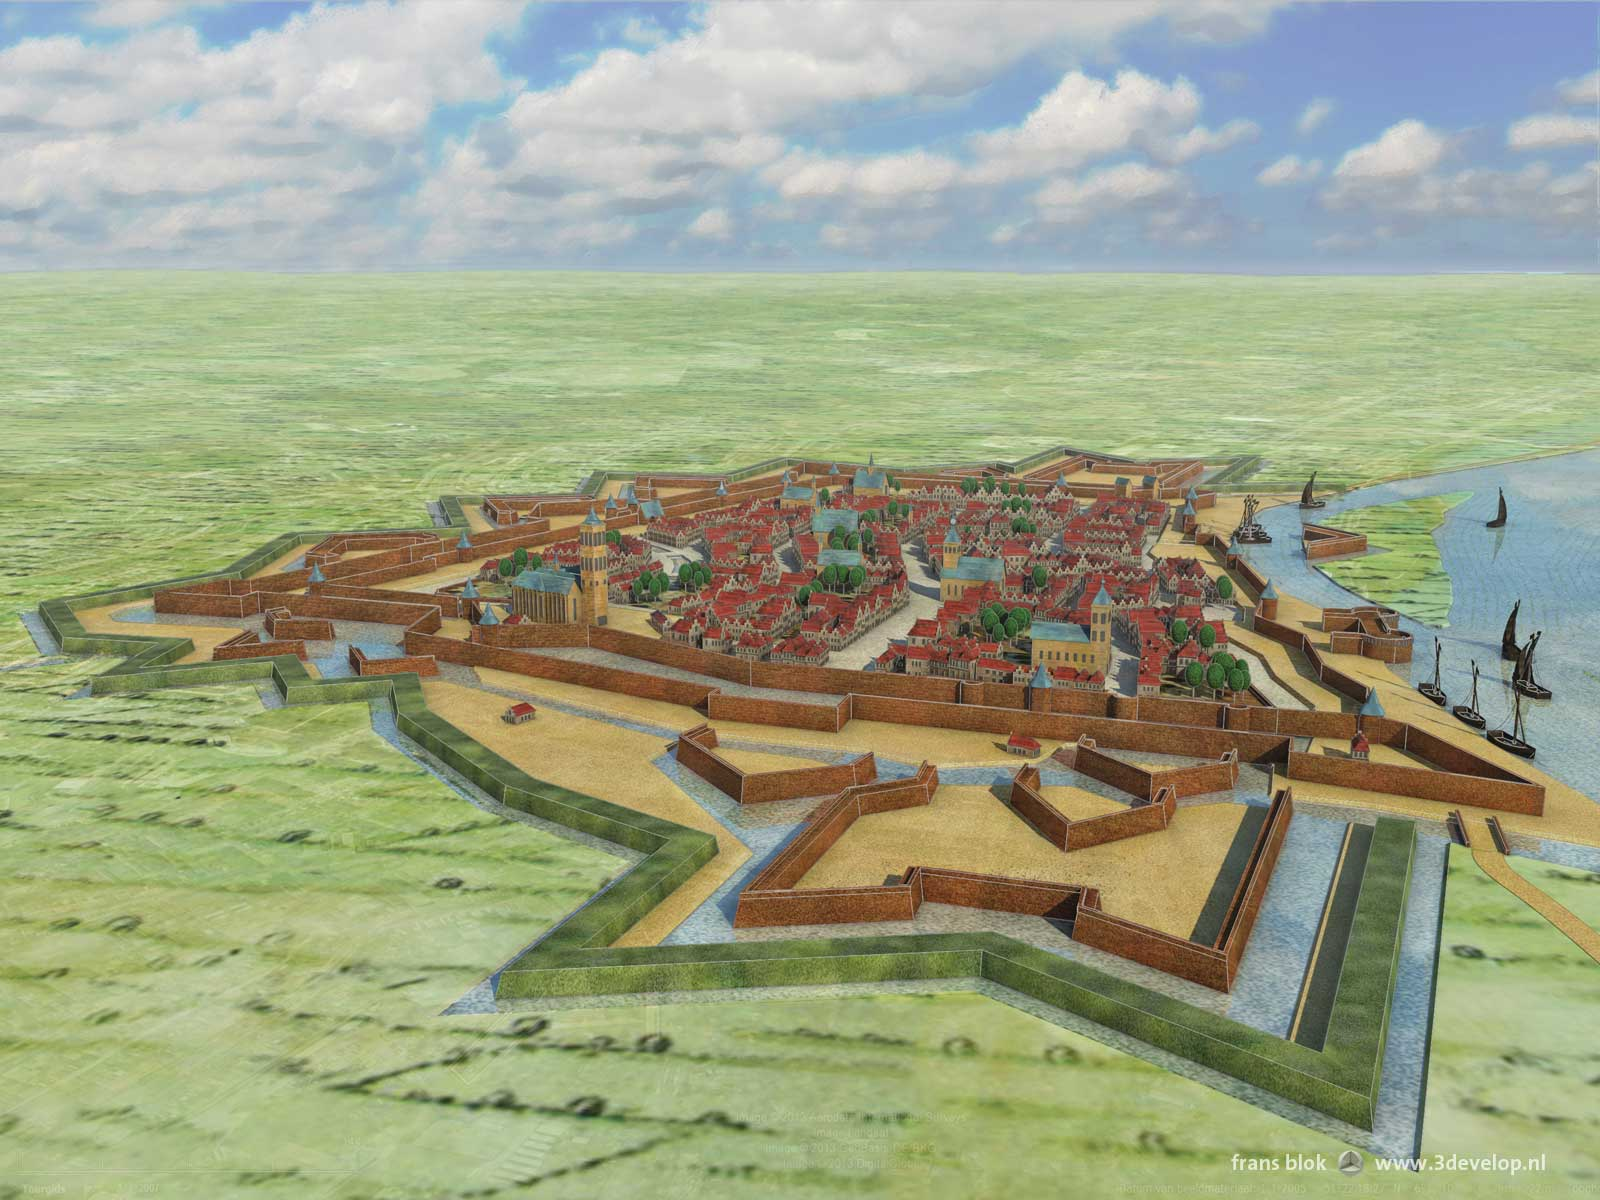 Visualisation of Venlo's fortifications in the 17th century